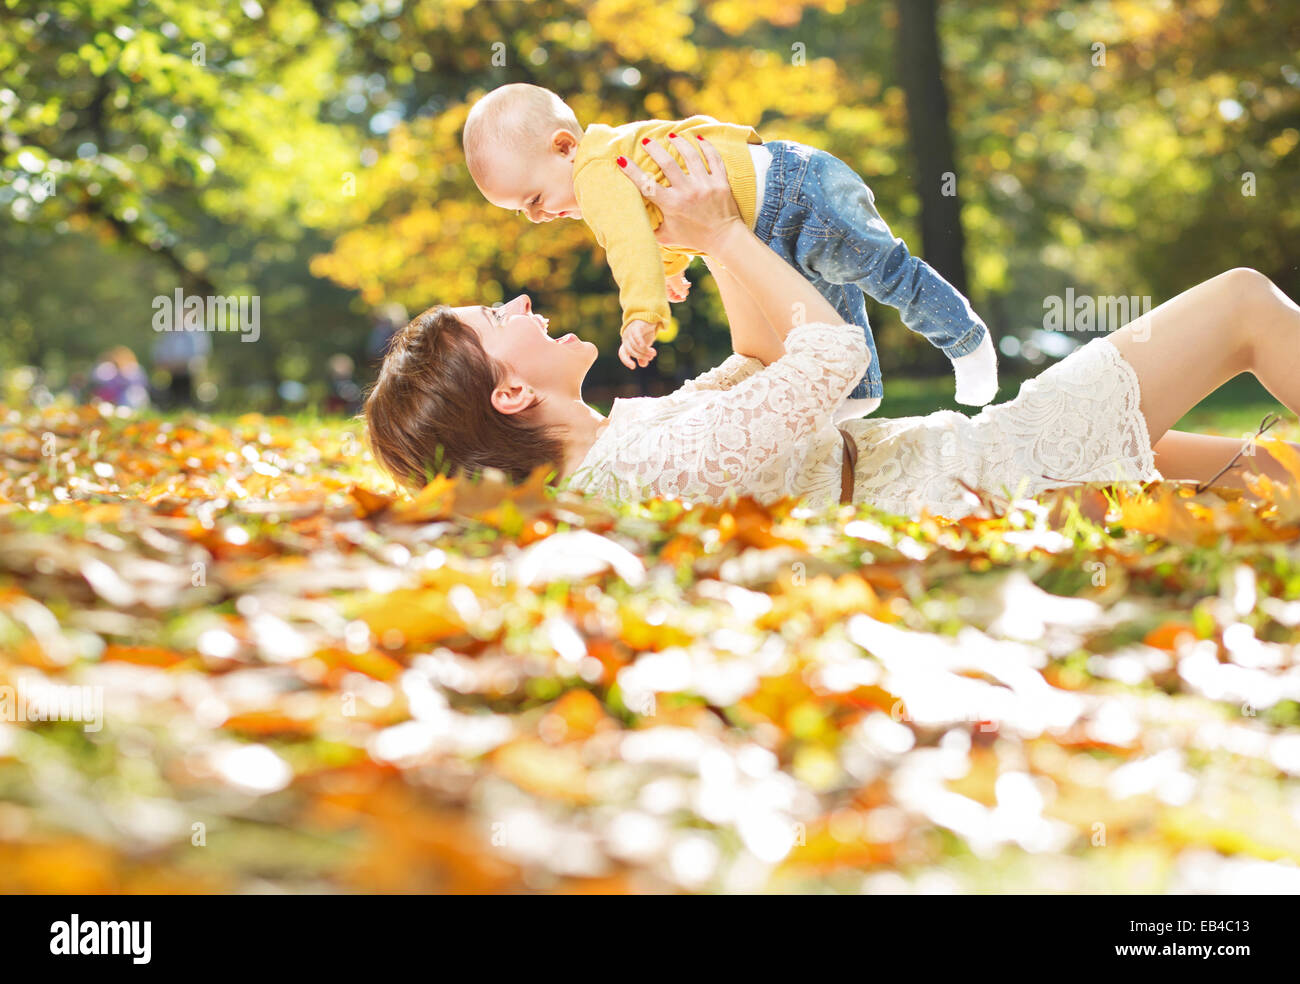 Autumn portrait of mother and baby - Stock Image